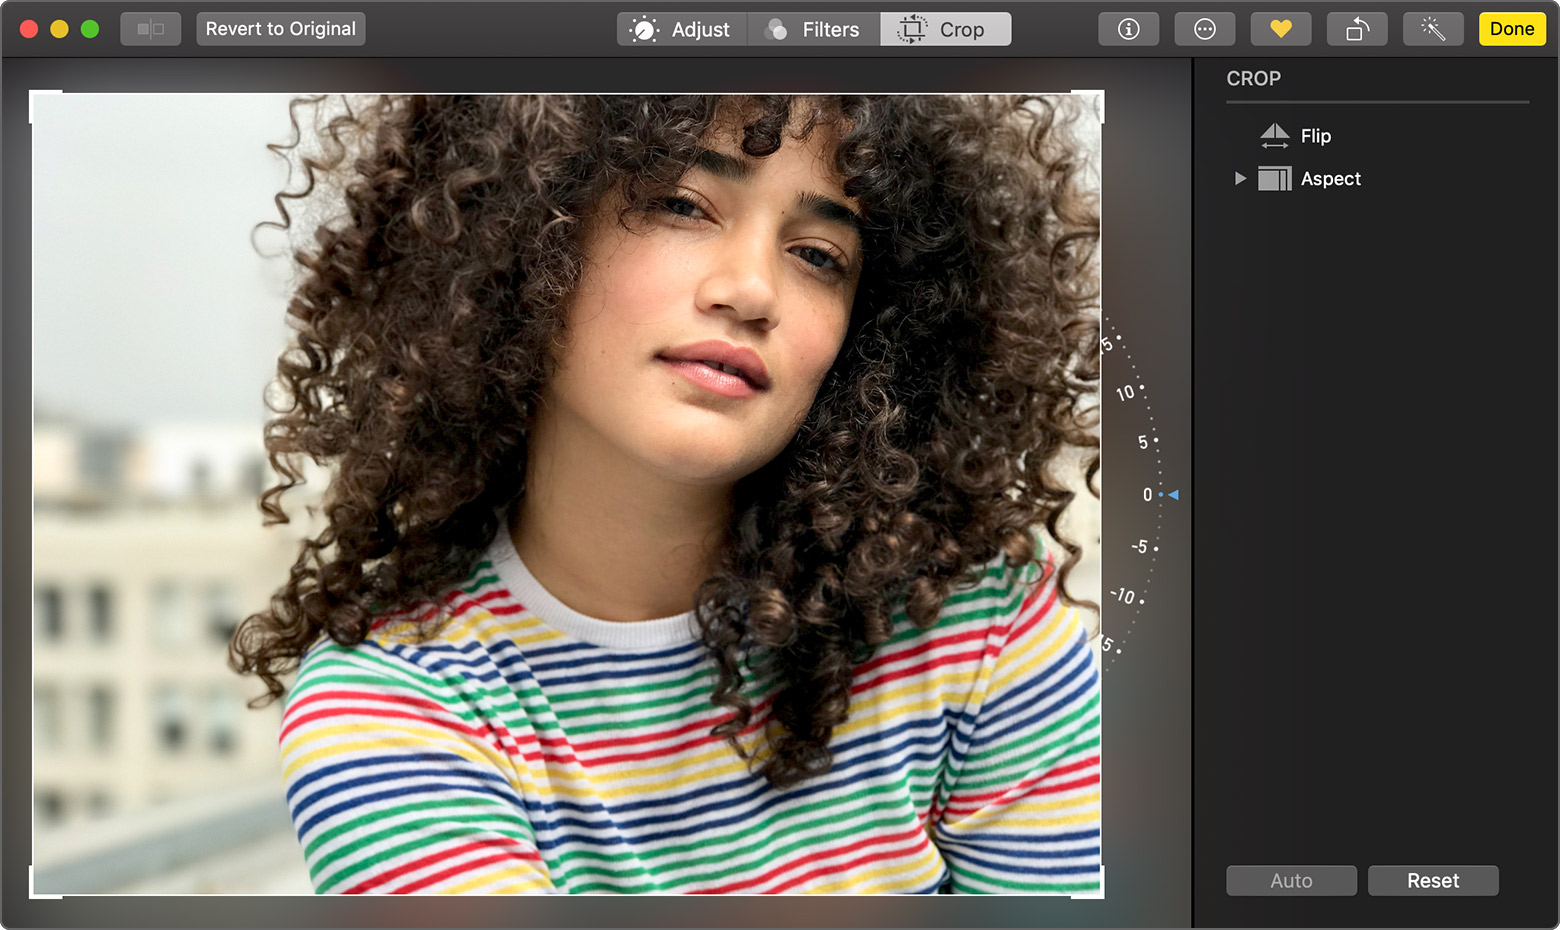 using the Crop tool in Photos on Mac